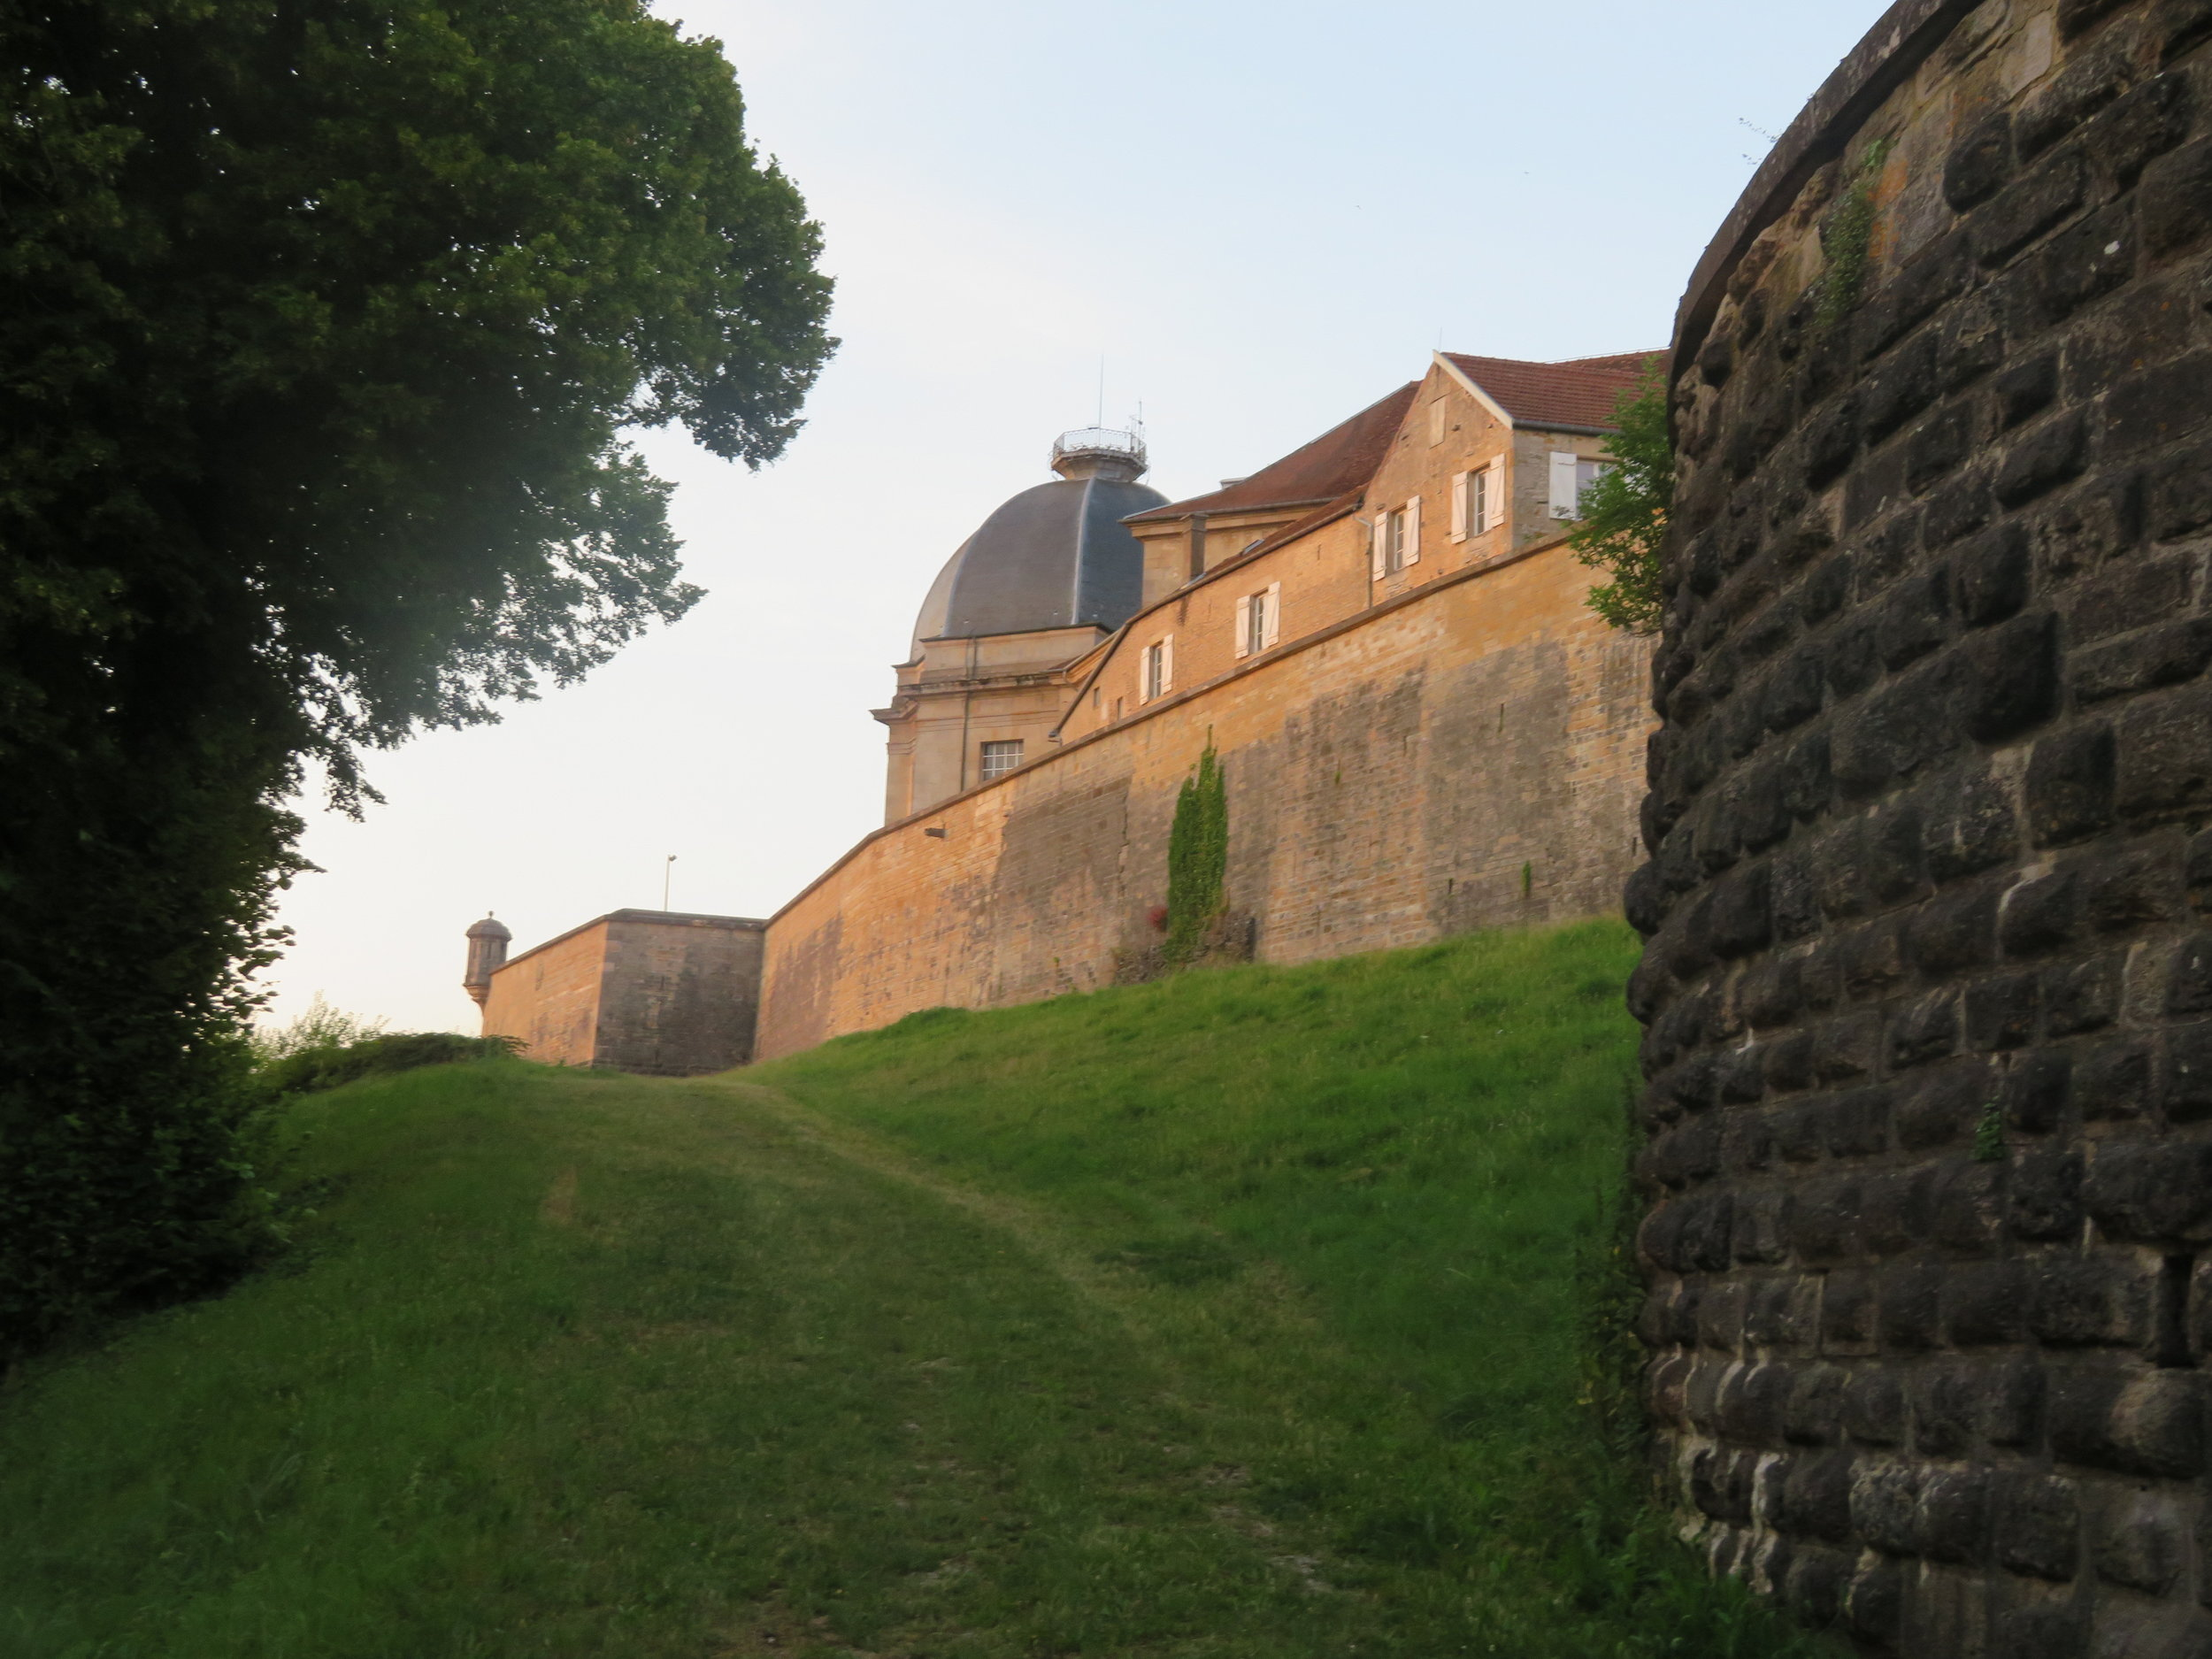 Down the path and out of the walled city